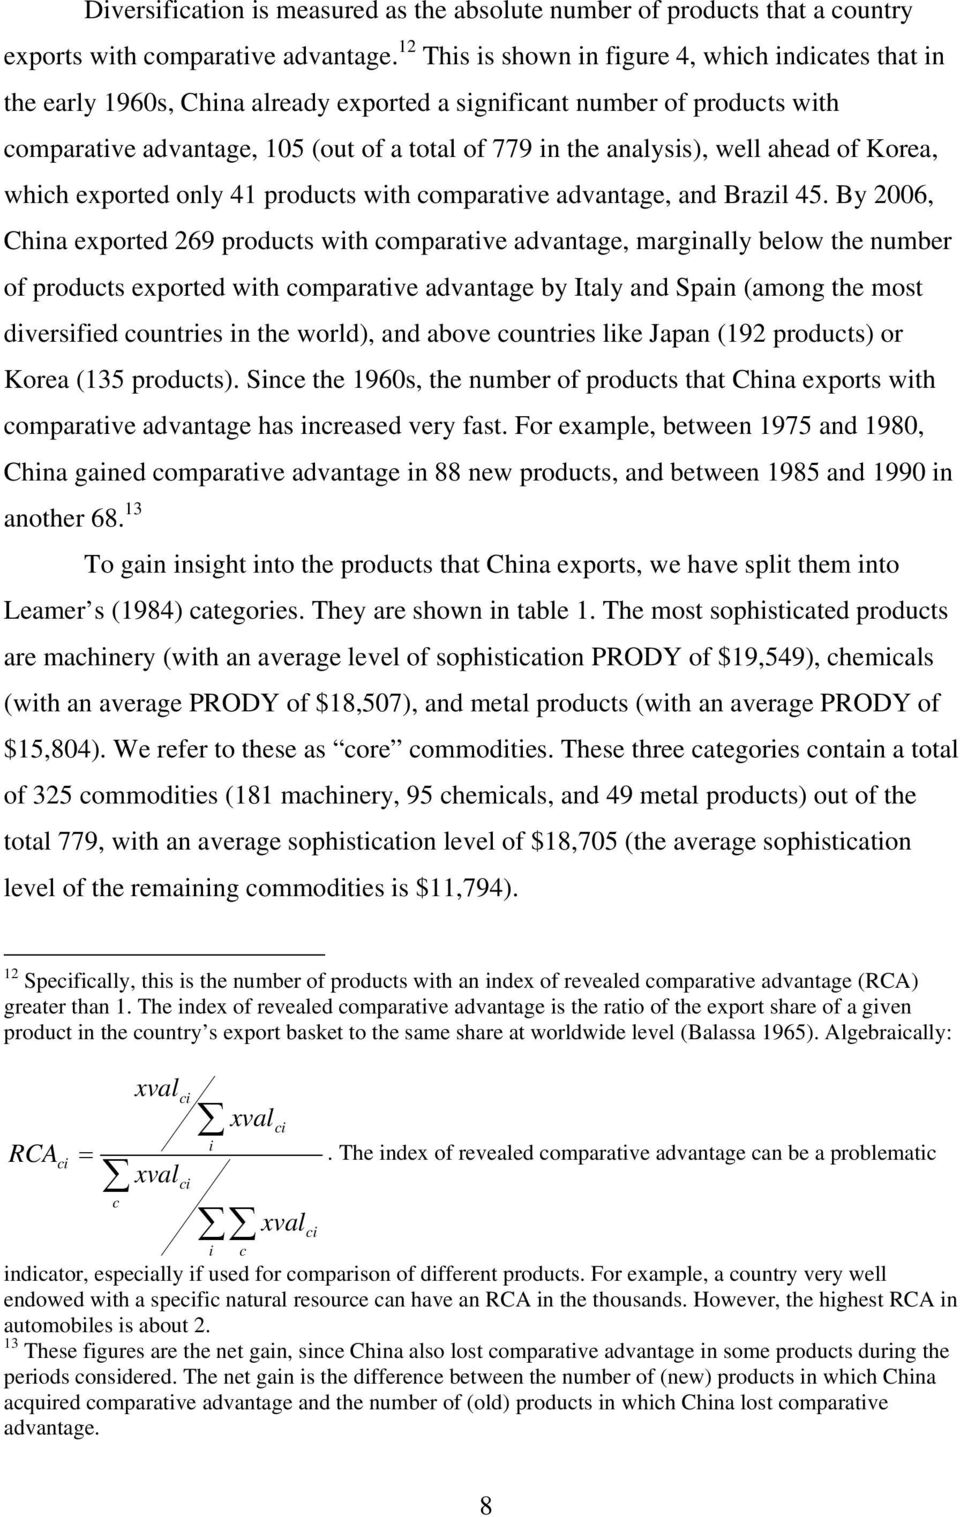 well ahead of Korea, which exported only 41 products with comparative advantage, and Brazil 45.